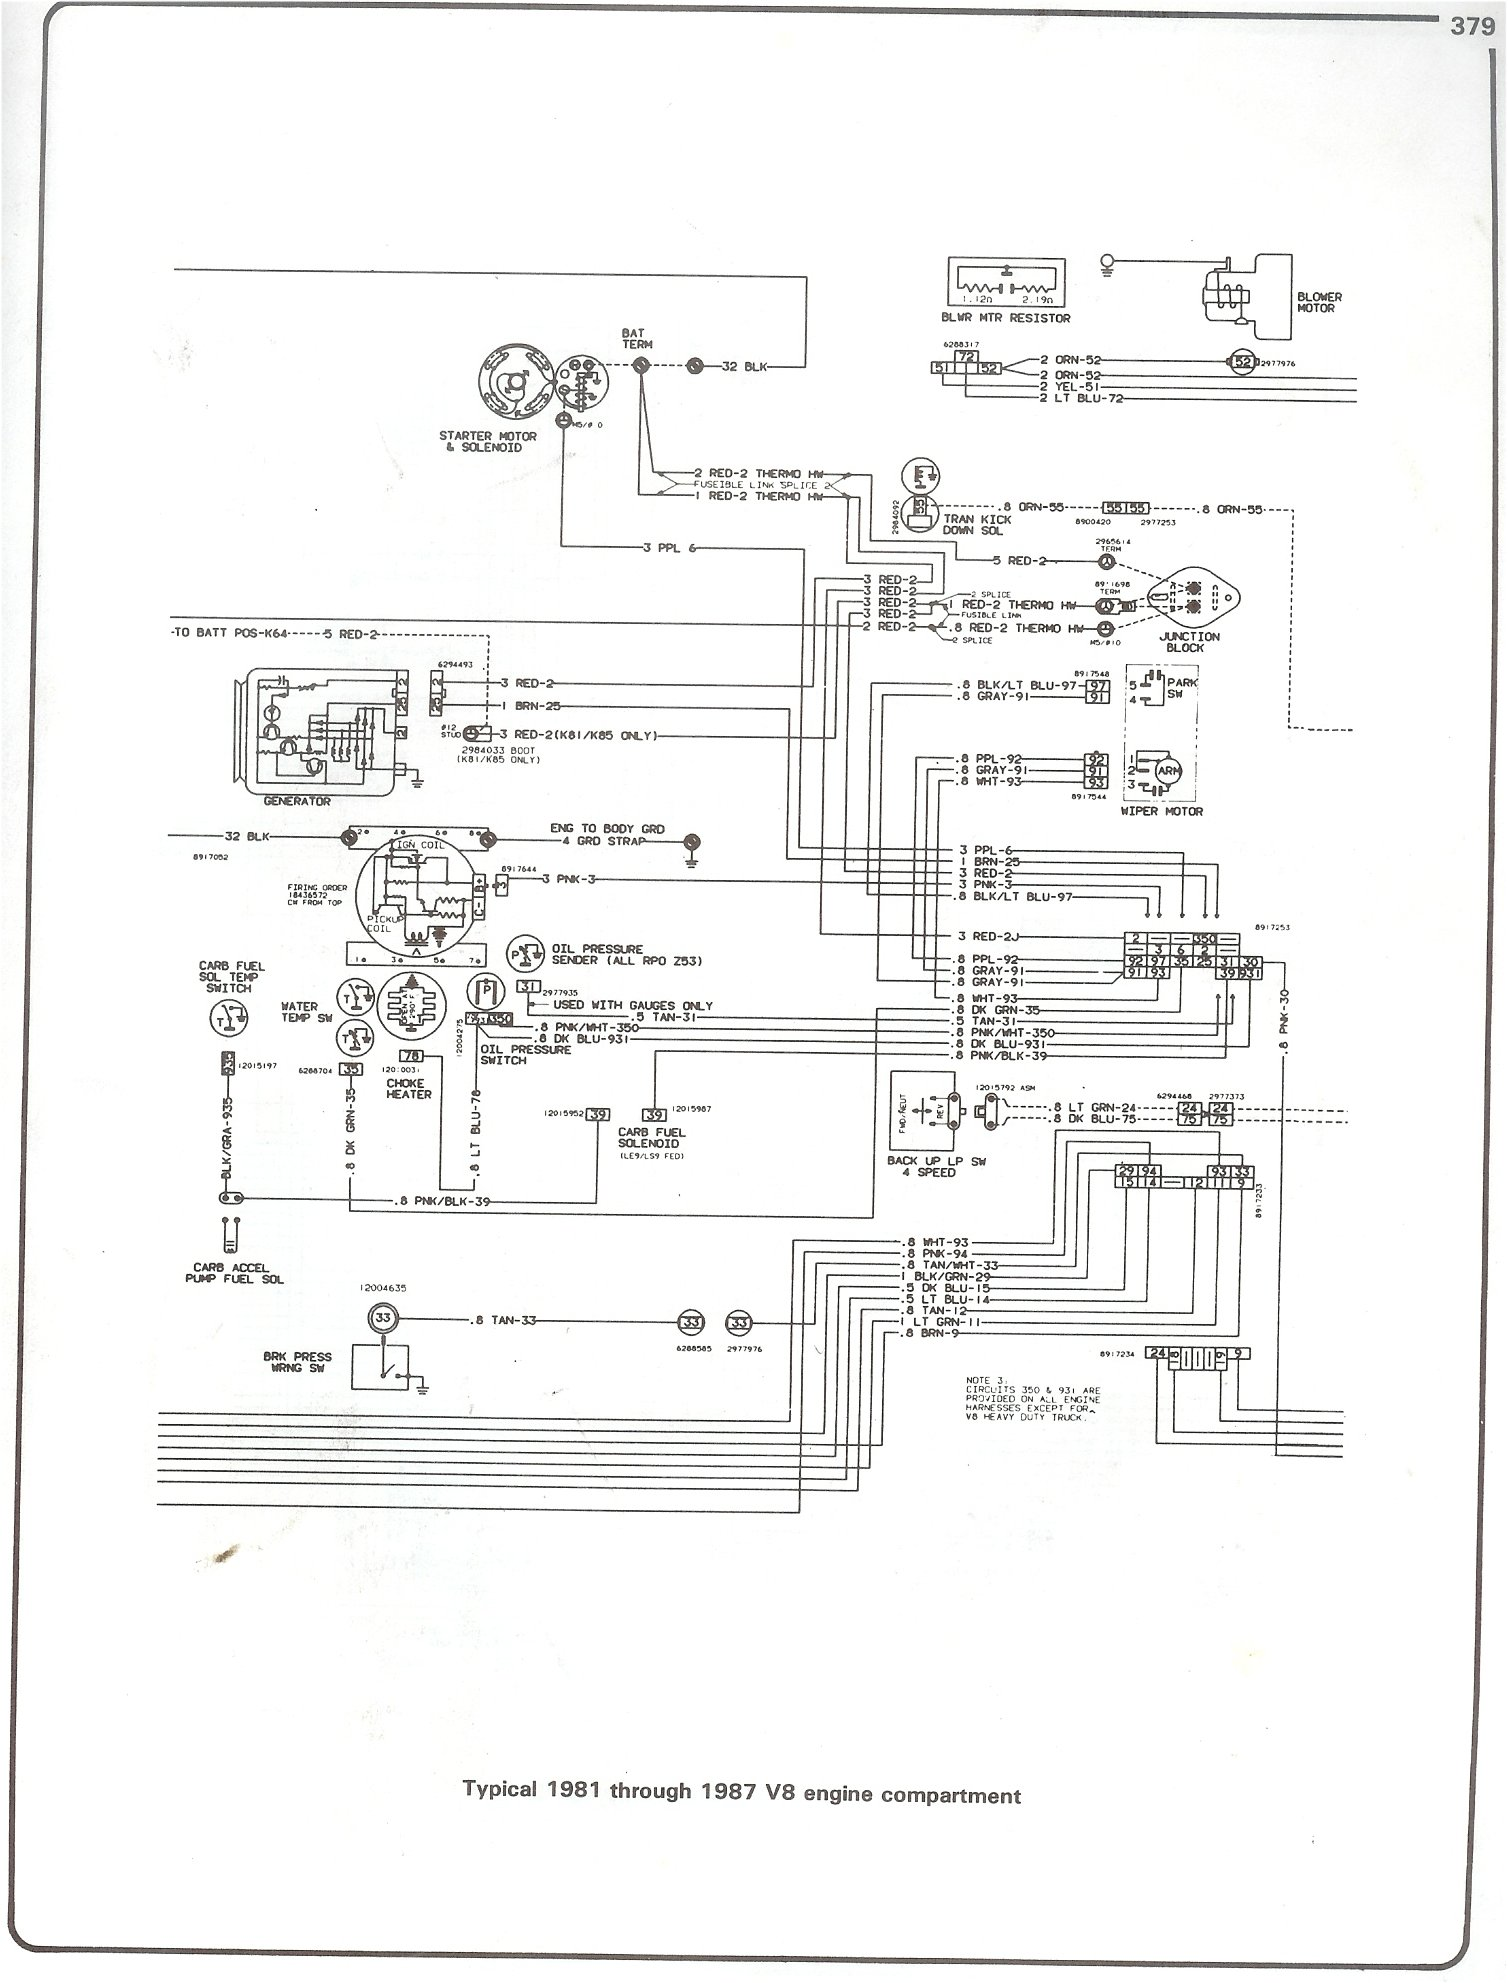 81 87_V8_engine complete 73 87 wiring diagrams 1986 chevy truck wiring diagram at gsmportal.co